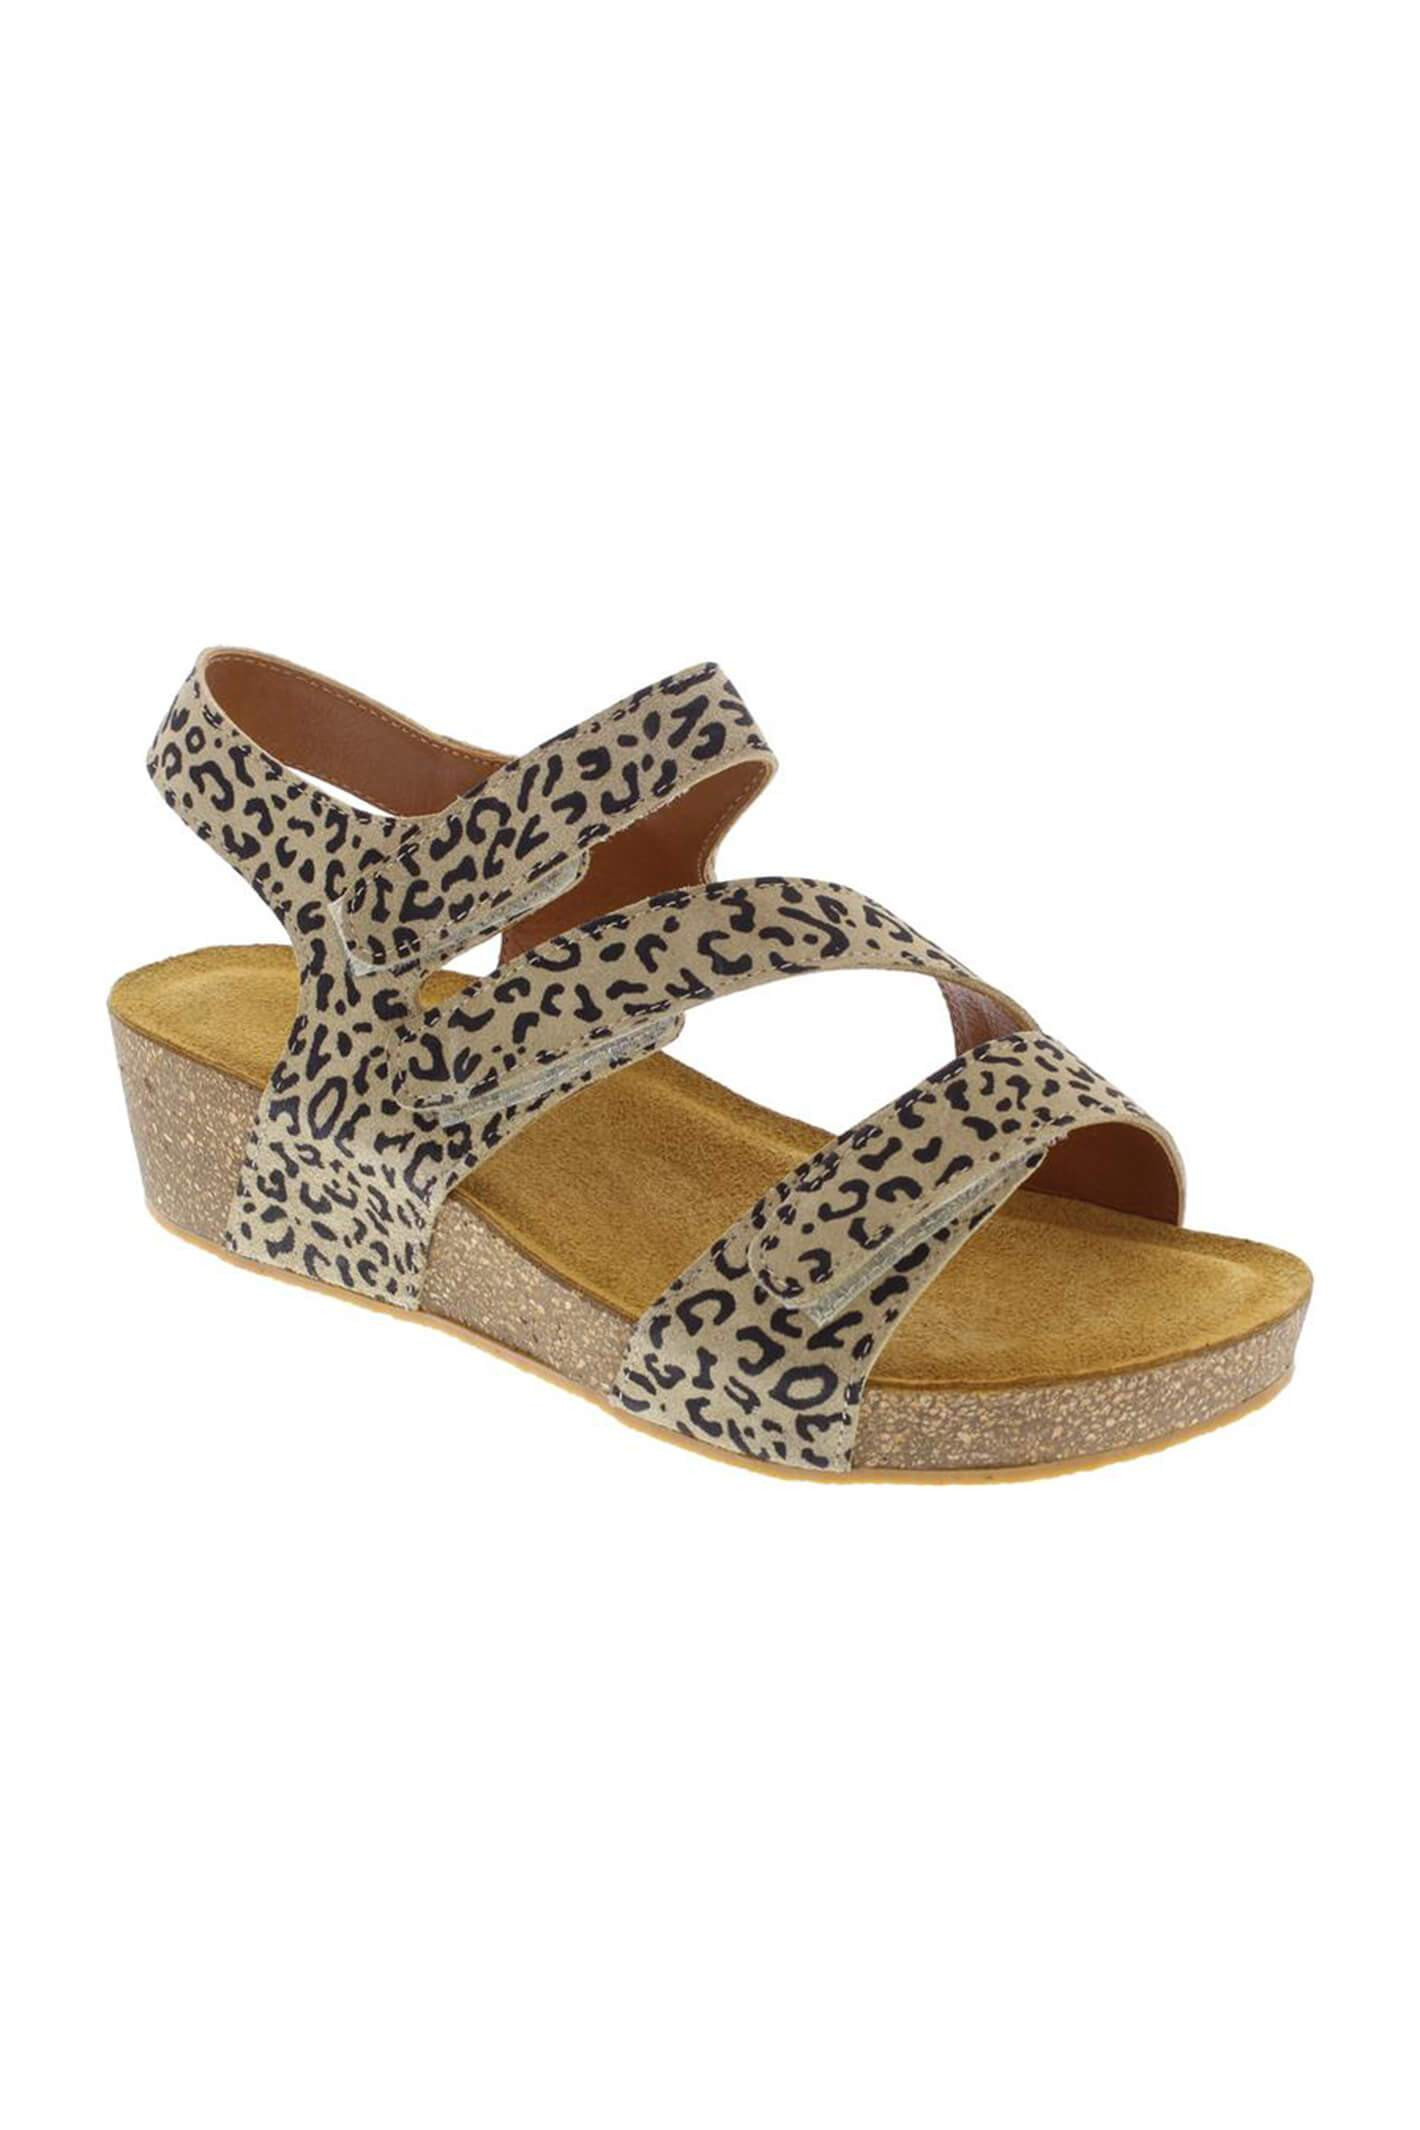 Adesso A6071 Jodie Leopard Wedges 4